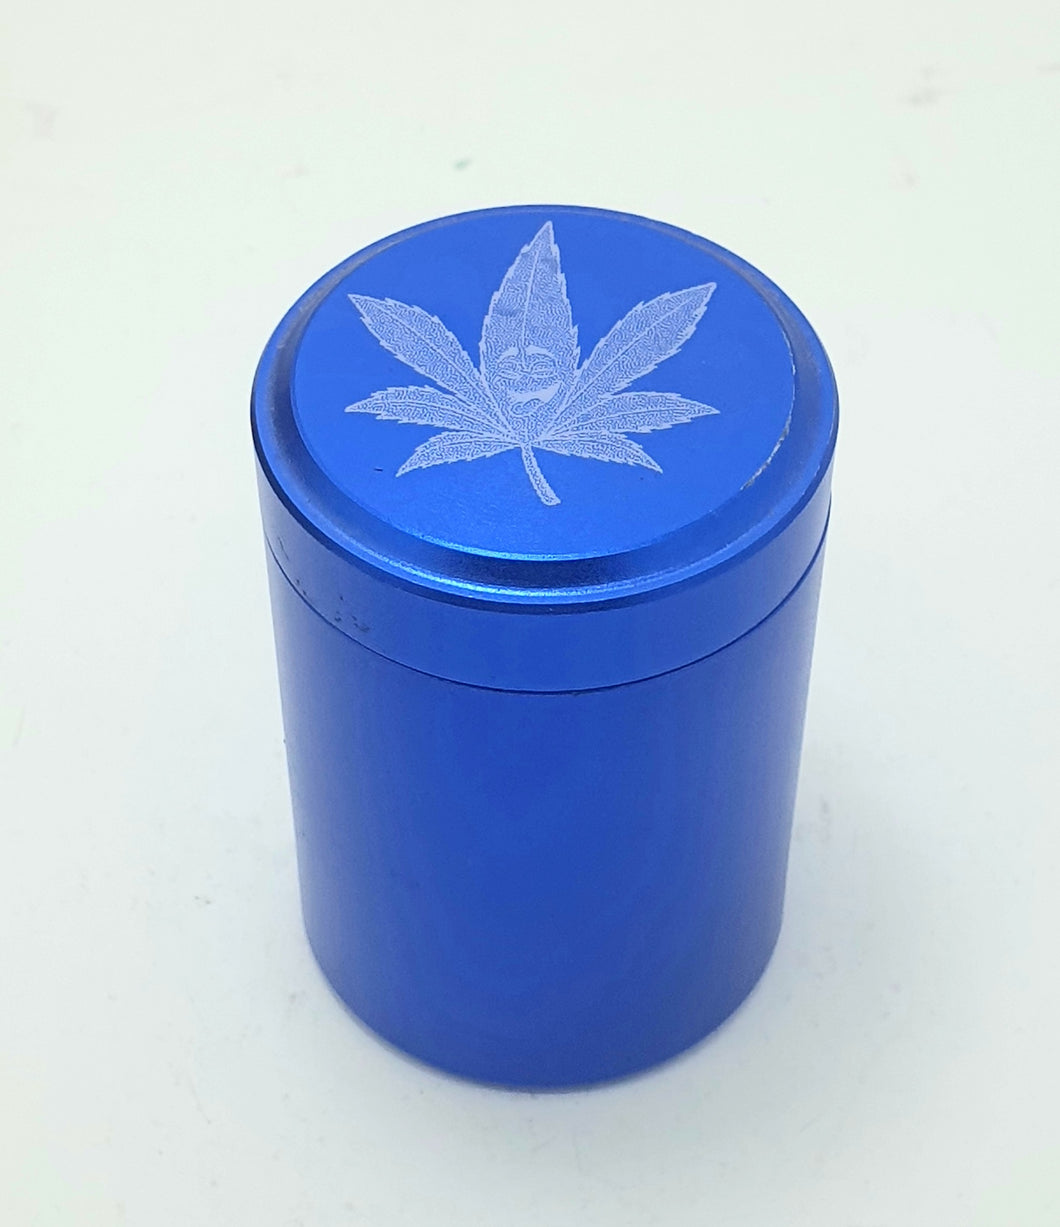 Custom Engraved Stash Pot Blue - With Your Logo/Image/Text